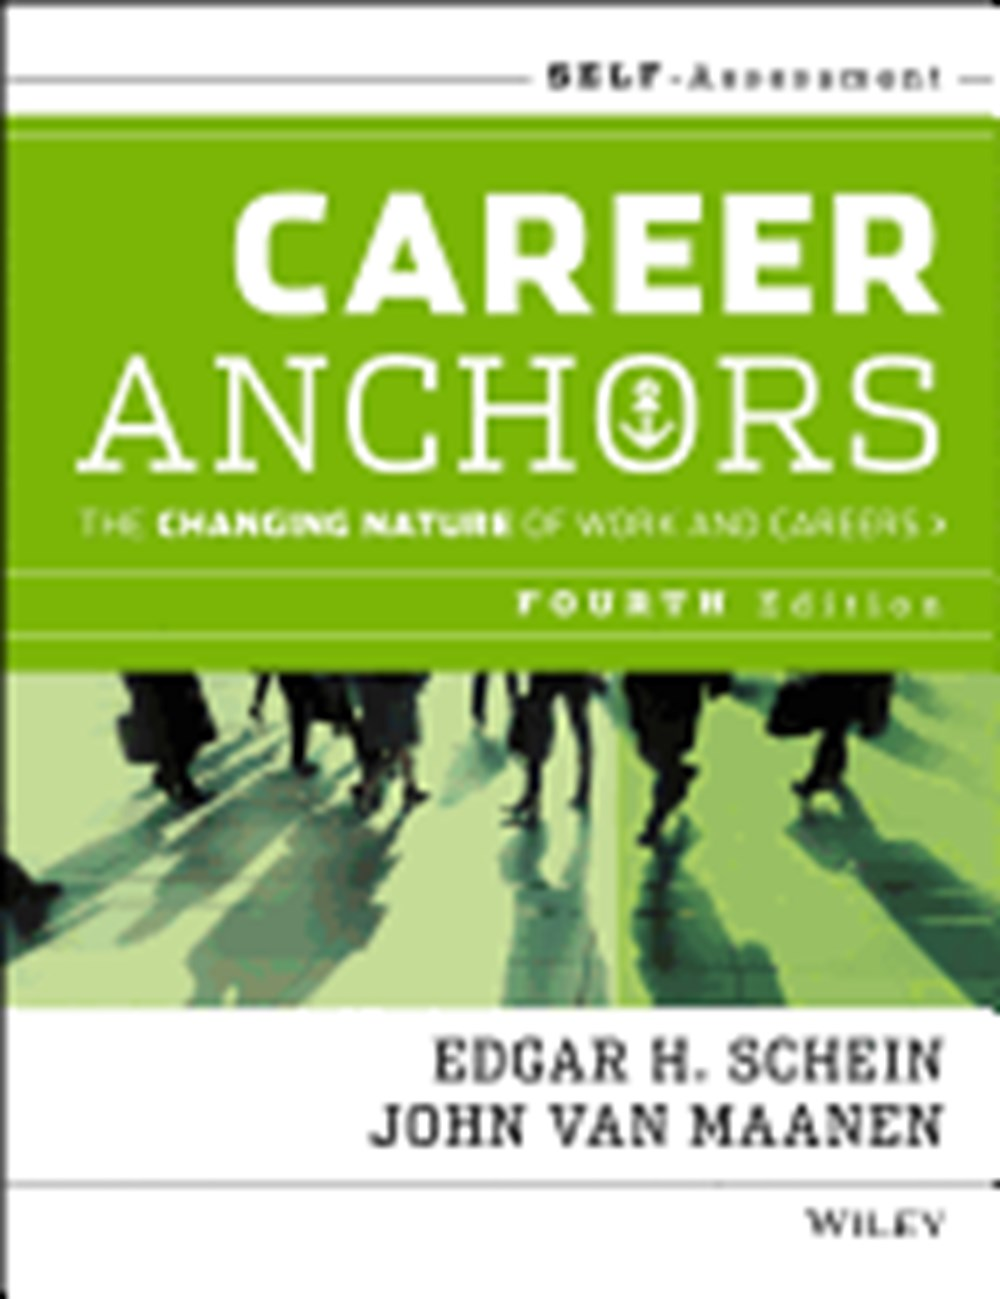 Career Anchors The Changing Nature of Careers Self Assessment (Revised)